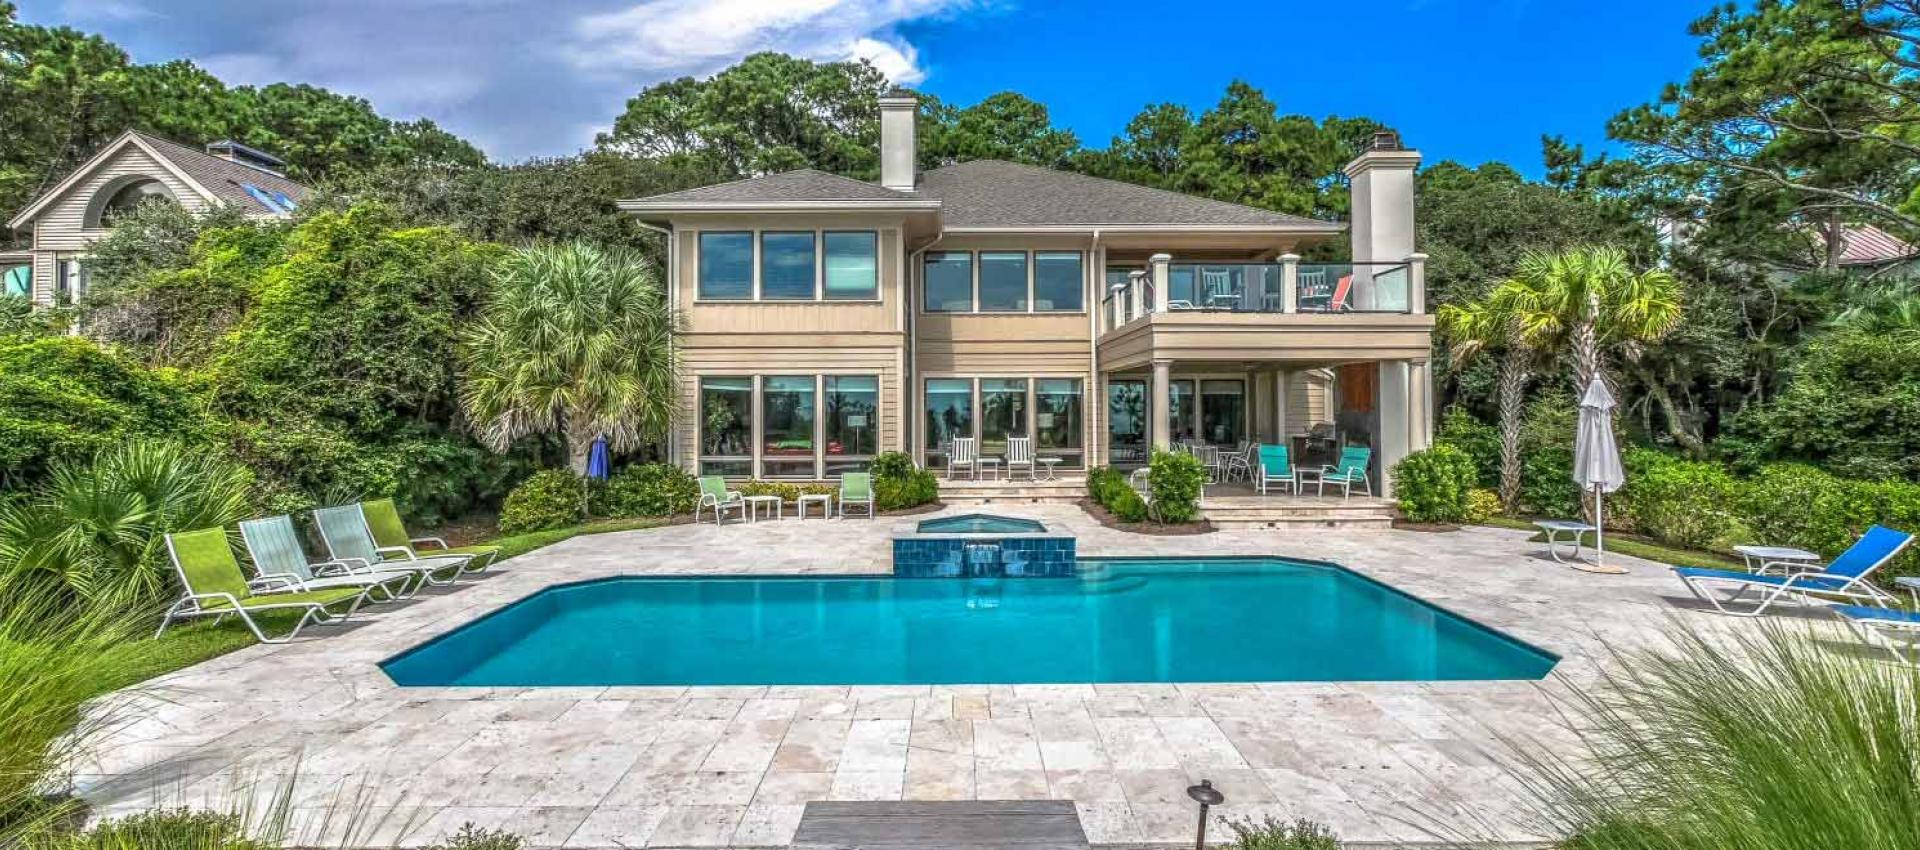 Vacation Home with a pool on Hilton Head Island